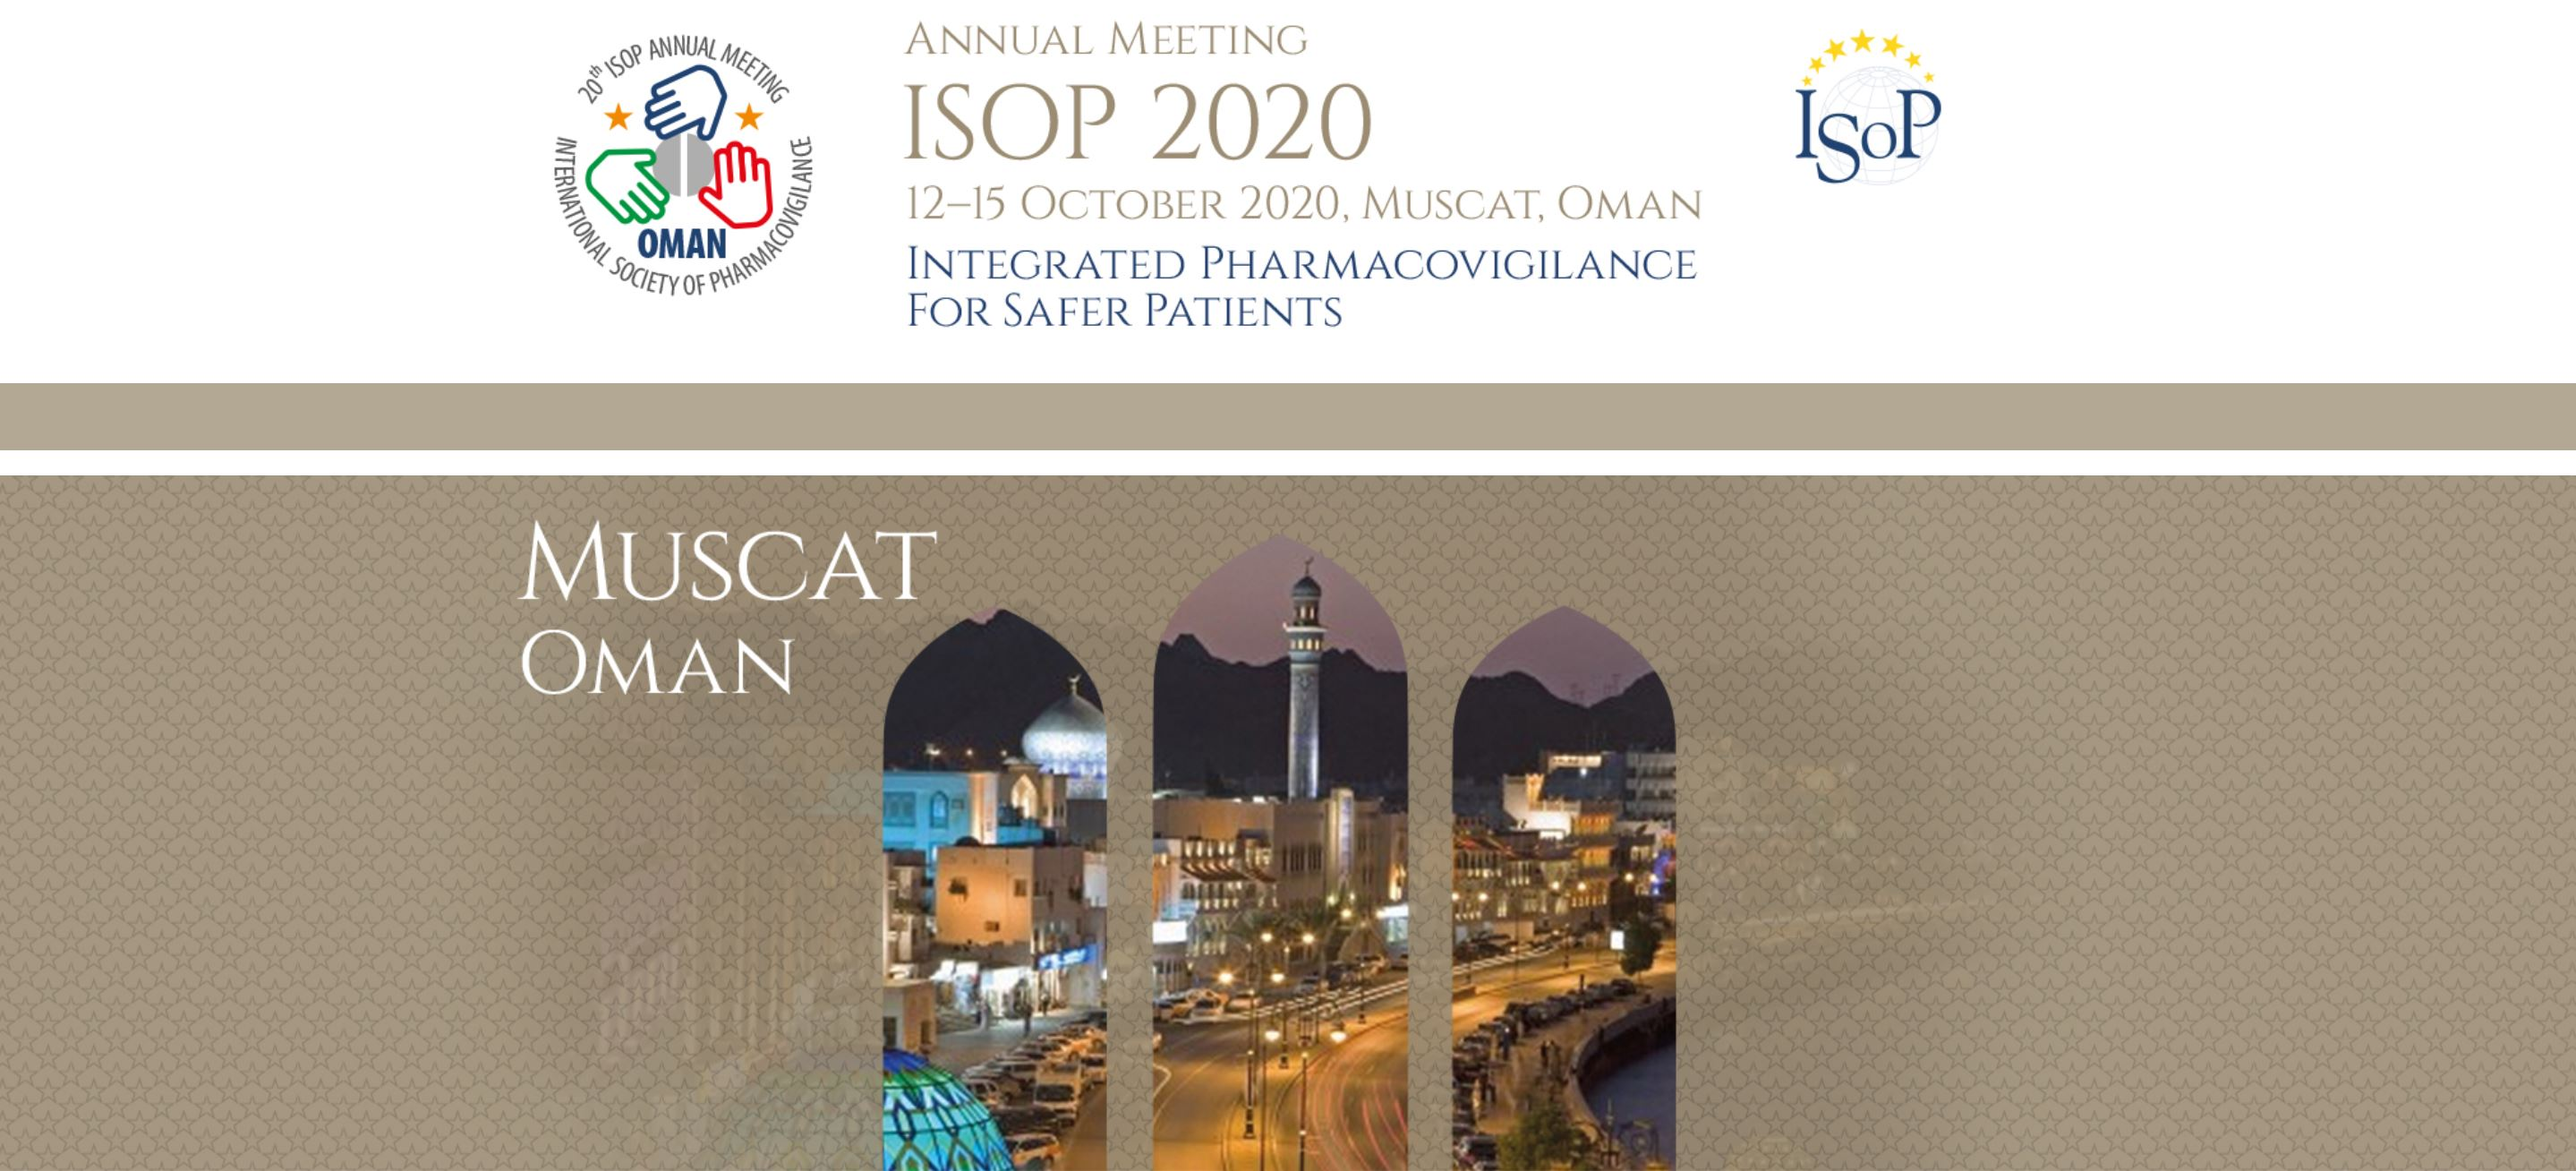 Annual Meeting  ISOP 2020